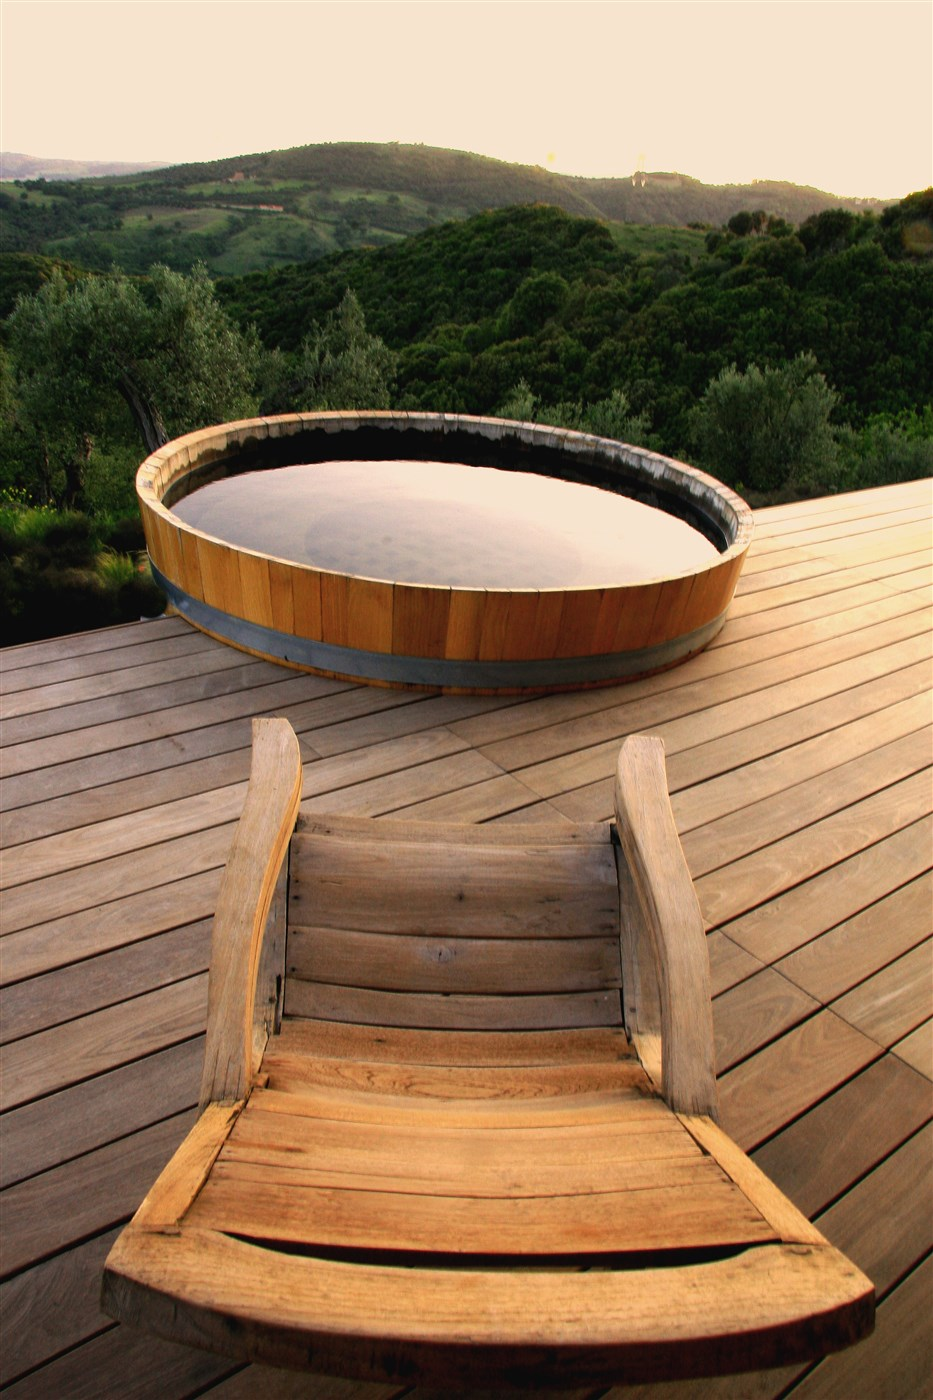 wood floor and chair,cozy wooden hot tub design ideas